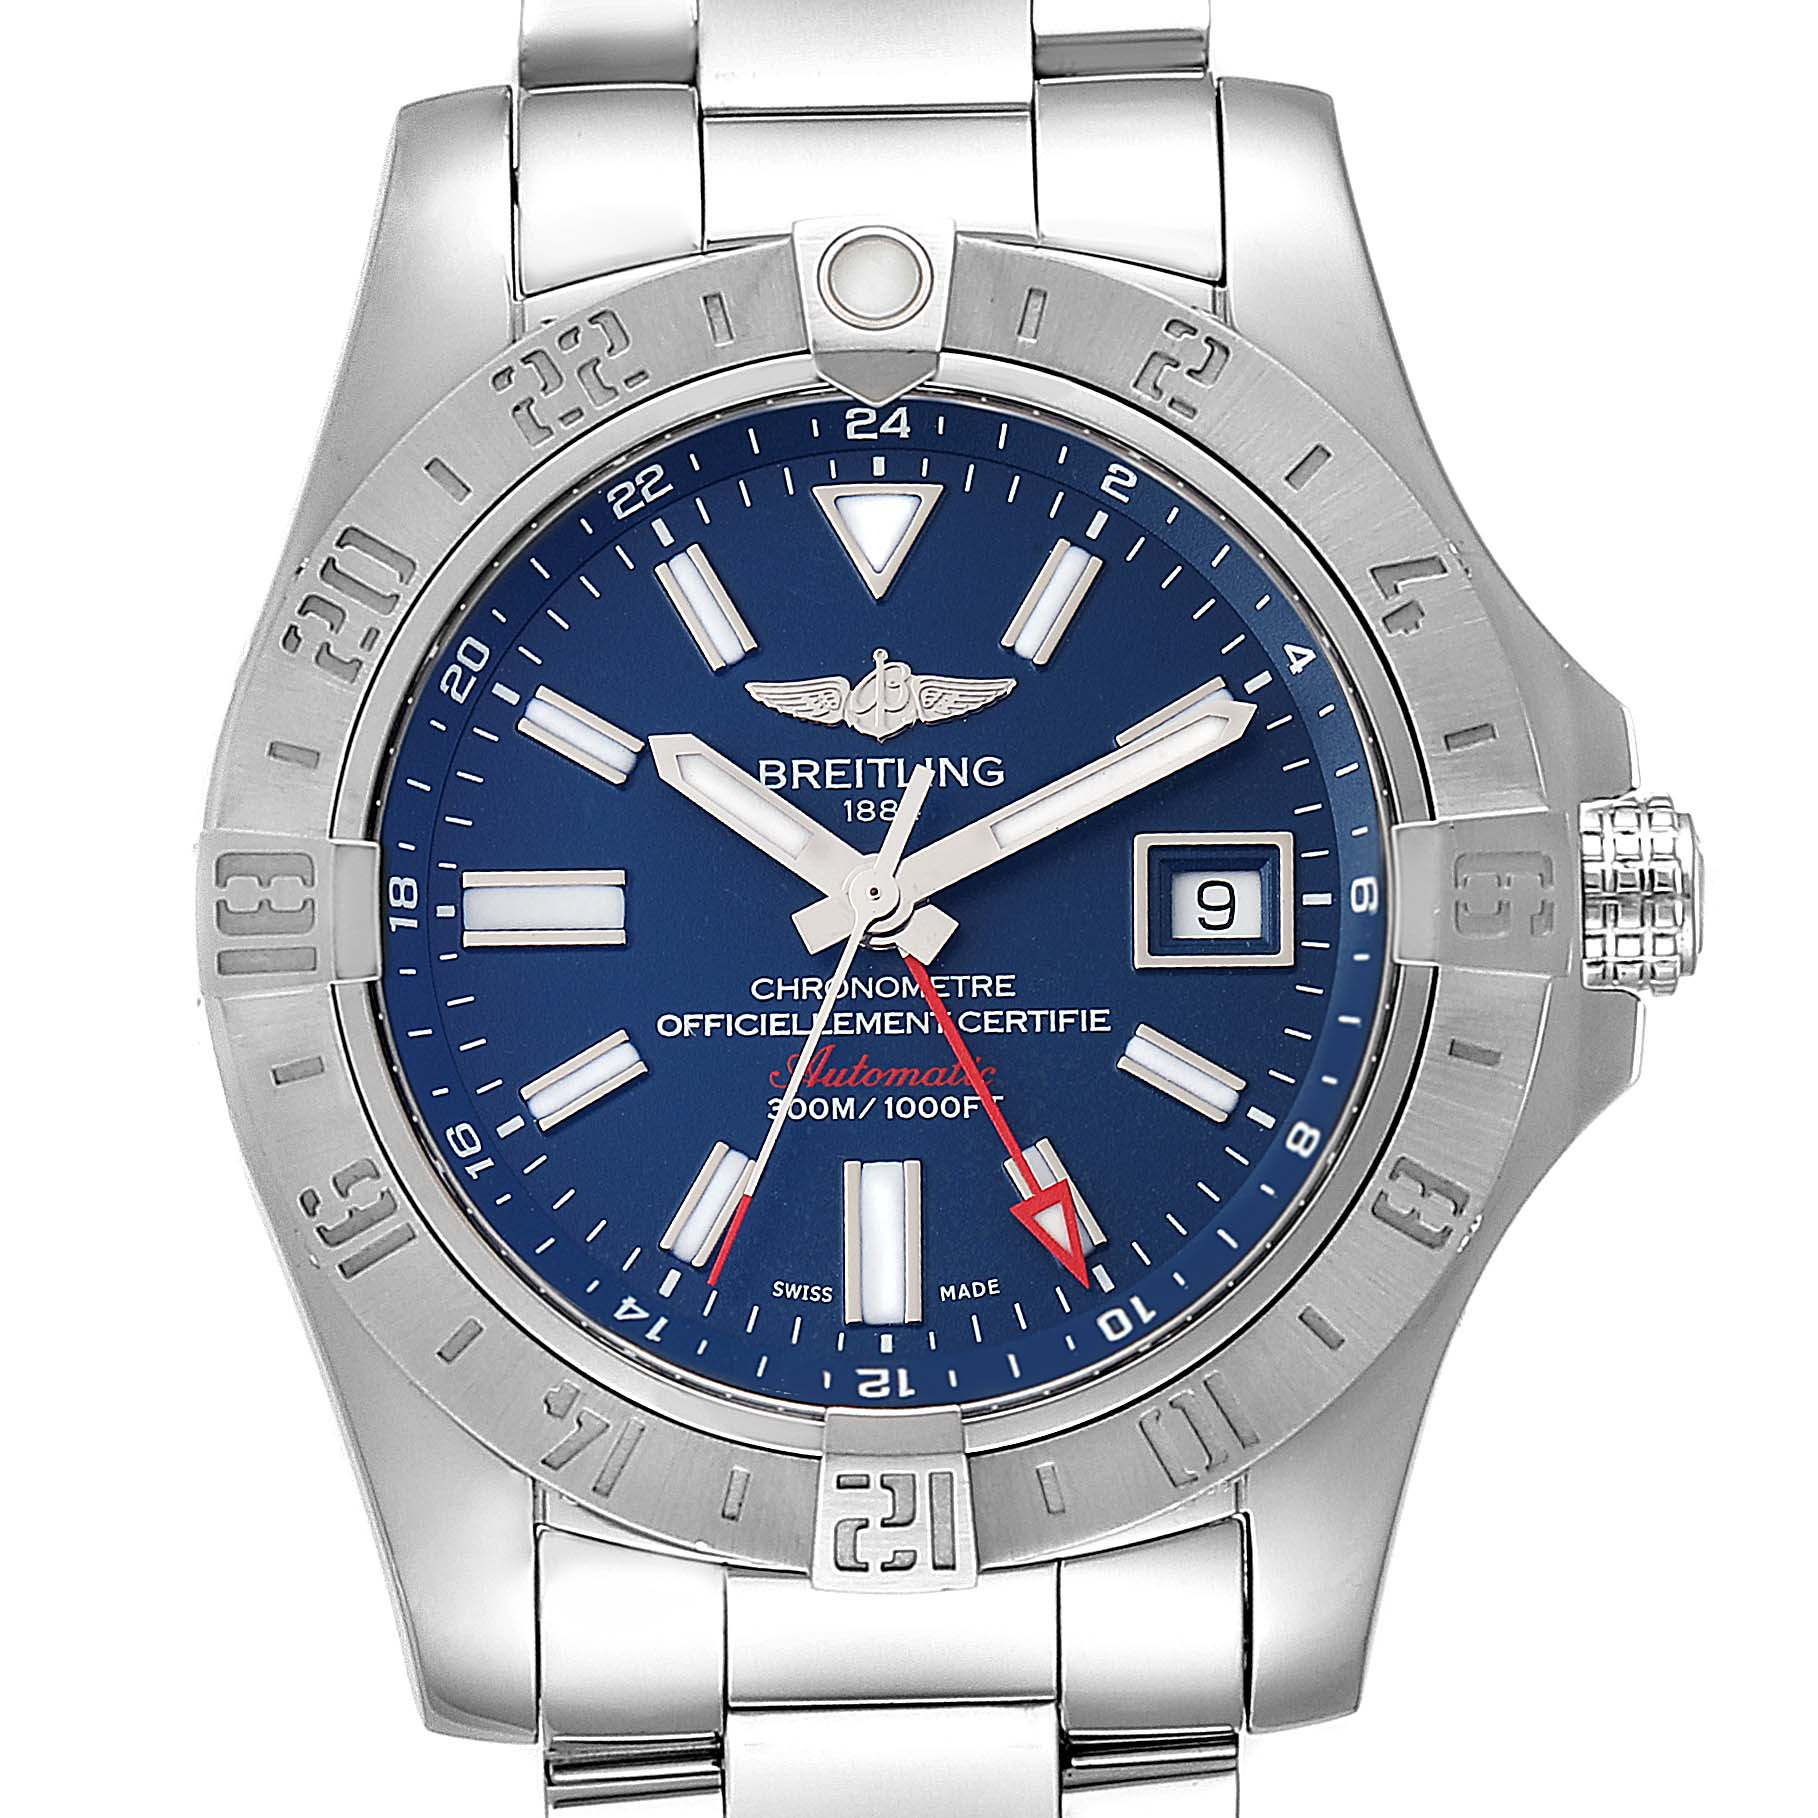 Breitling Aeromarine Avenger II GMT Blue Dial Watch A32390 Box Papers